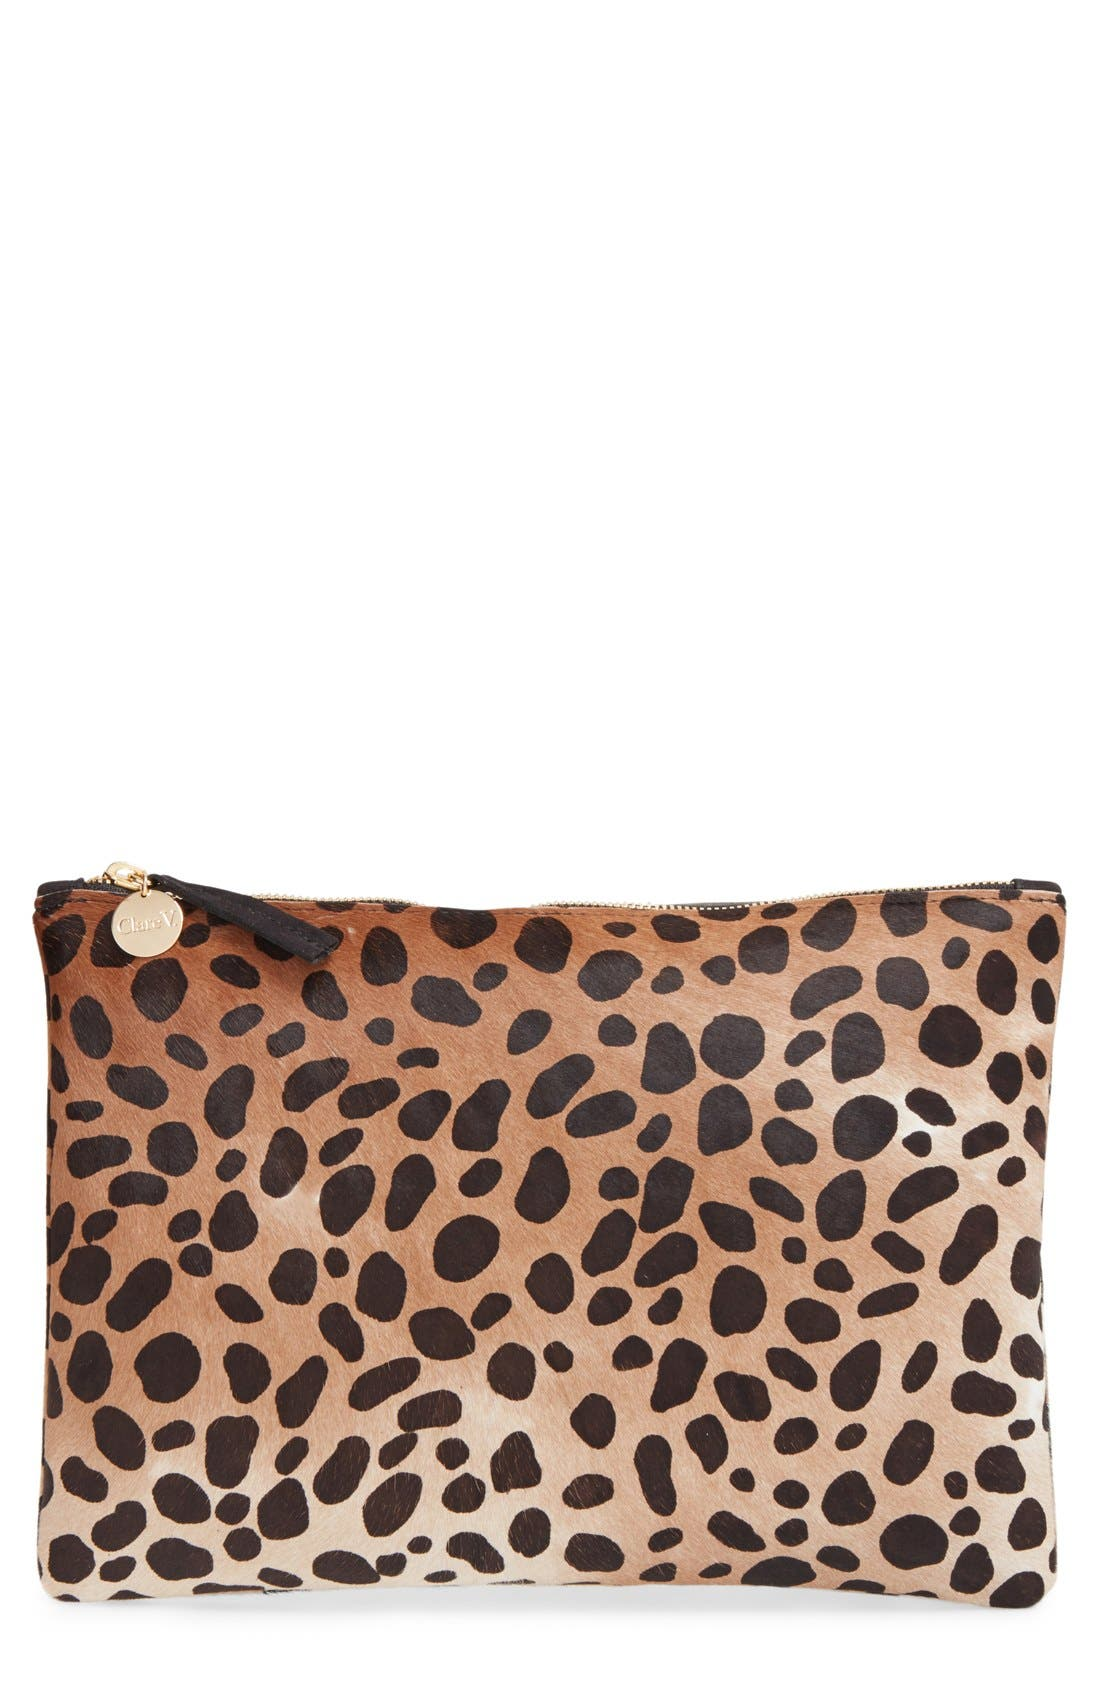 CLARE V. Genuine Calf Hair Leopard Print Zip